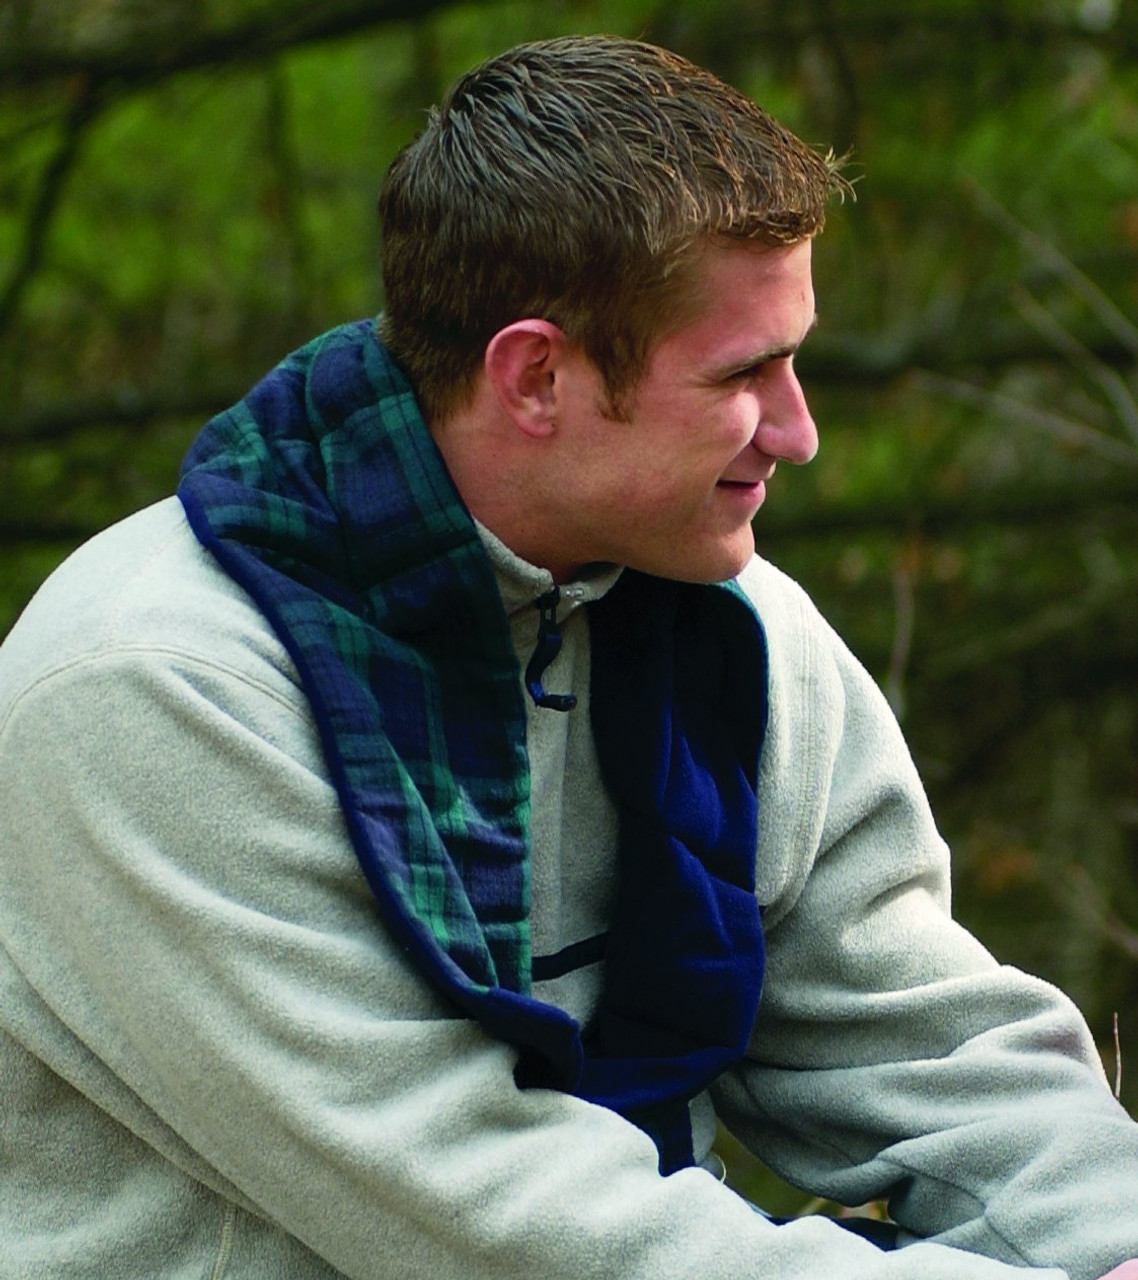 Heatable Nor'easter Scarf Provides Soothing Warmth for up to 30 Minutes after Heating in Microwave.